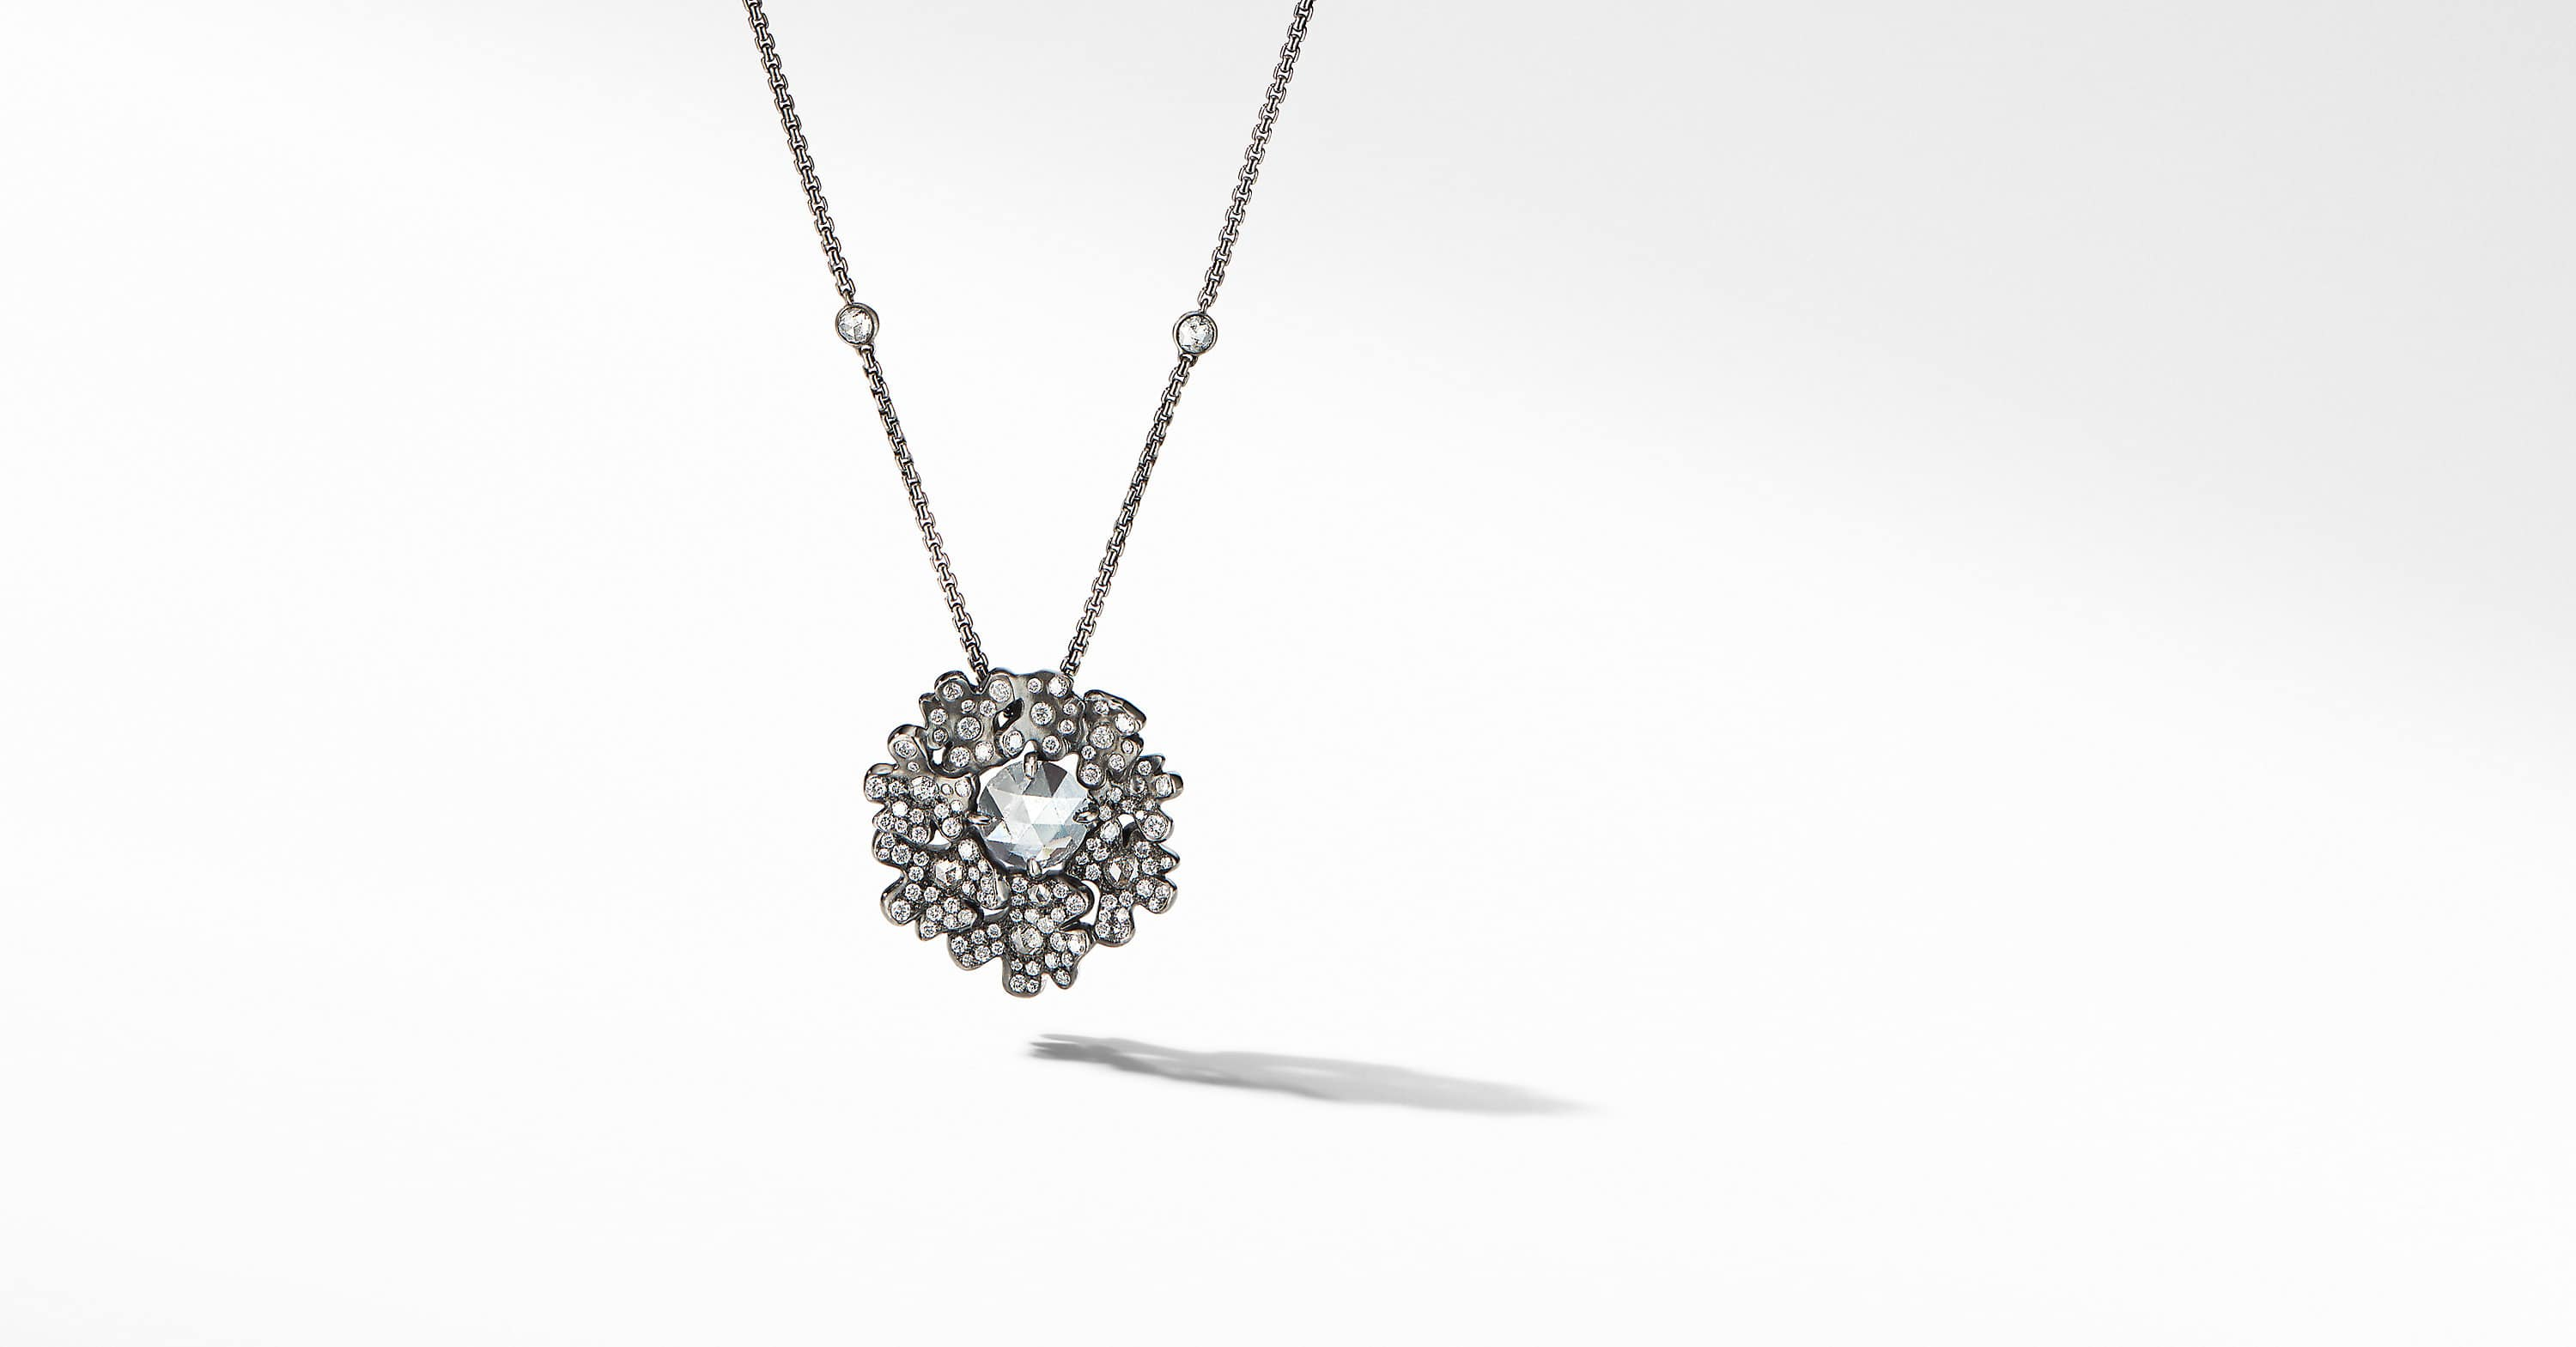 Night Petals Cluster Pendant in White Gold with Diamonds